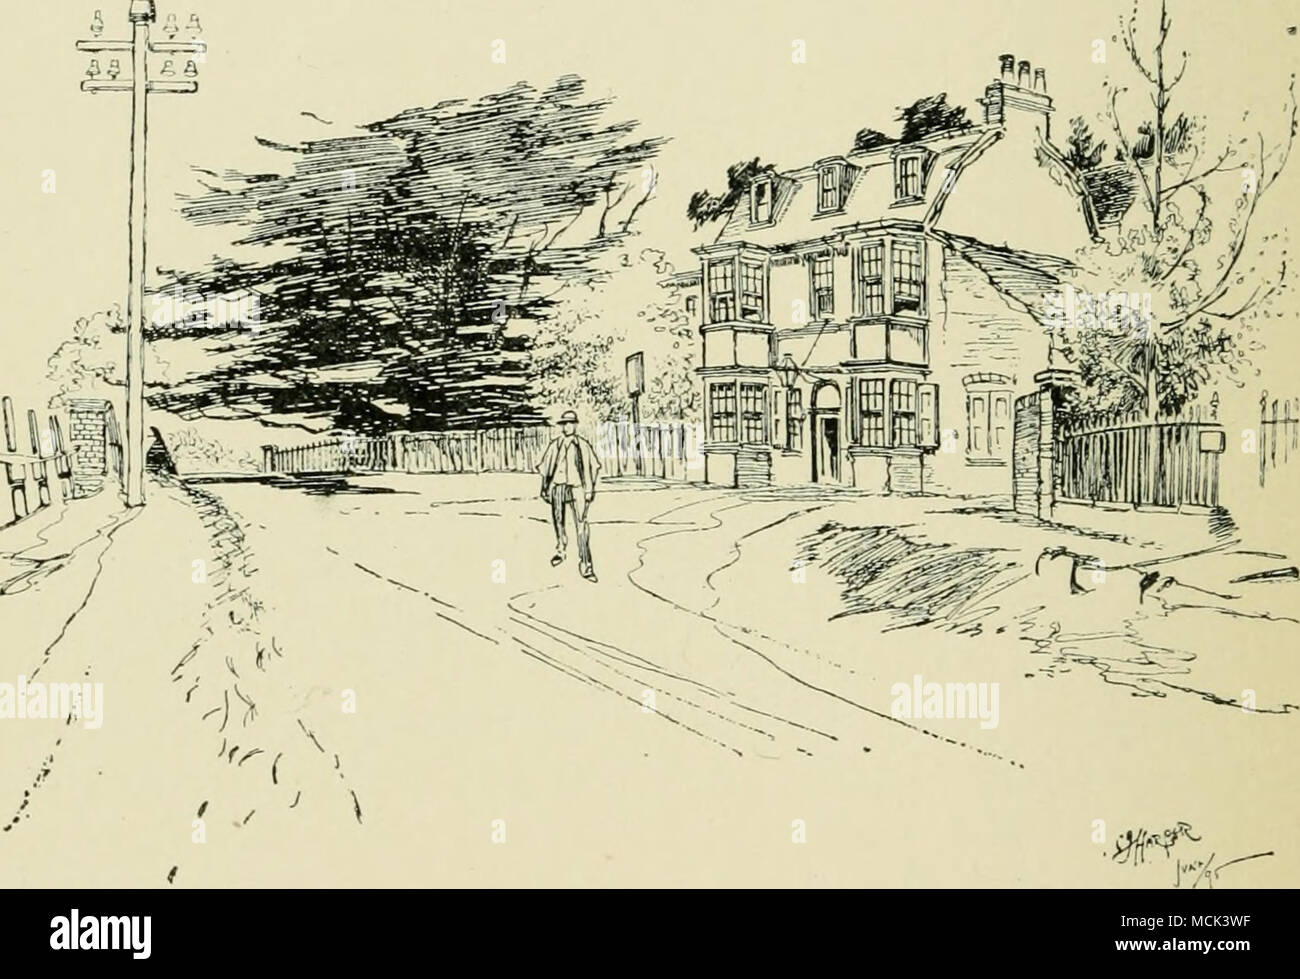 """. THE """" FALSTAFF,"""" GAD'S HILL. From here the road goes steepl}^ all the way to Strood, over Coach and Horses' Hill, and through a deep cutting made by the Highway Board about 1830, in order to ease the heavy pull up from Rochester ; a cutting known at that time as '' Davies' Straits,"""" from the name of the chairman of the Board, the Rev. George Davies. The view here, over house-tops toward the Medway, framed in on either side by this hollow road, is particularly fine, and I think I cannot come through Strood into Rochester without quoting a certain lieutenant who, with a captain  - Stock Image"""